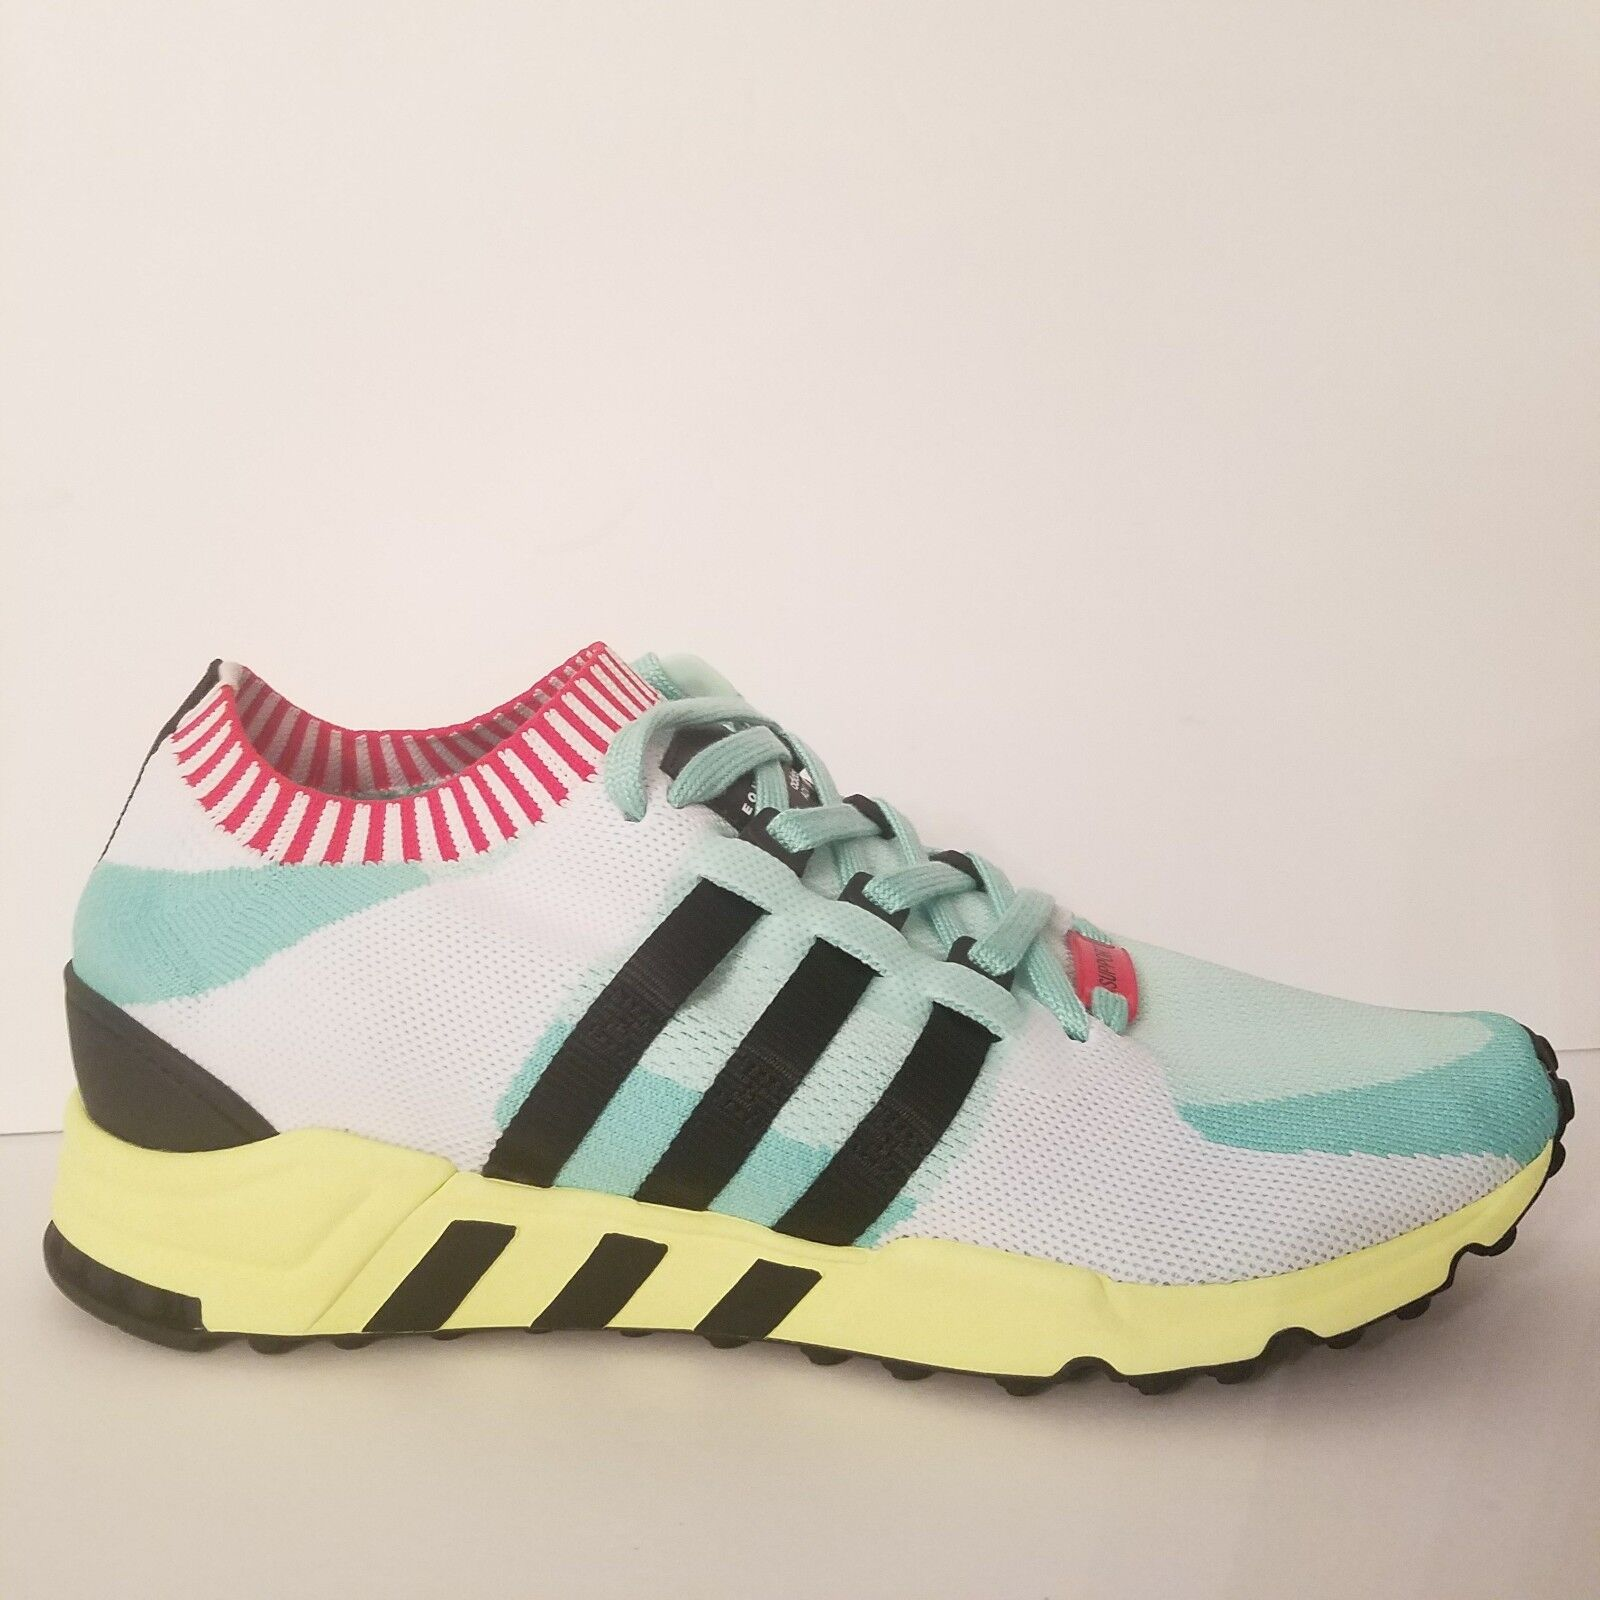 Adidas Originals EQT Support Boost Mens Size 11 Prime Knit Frozen Green BA7506